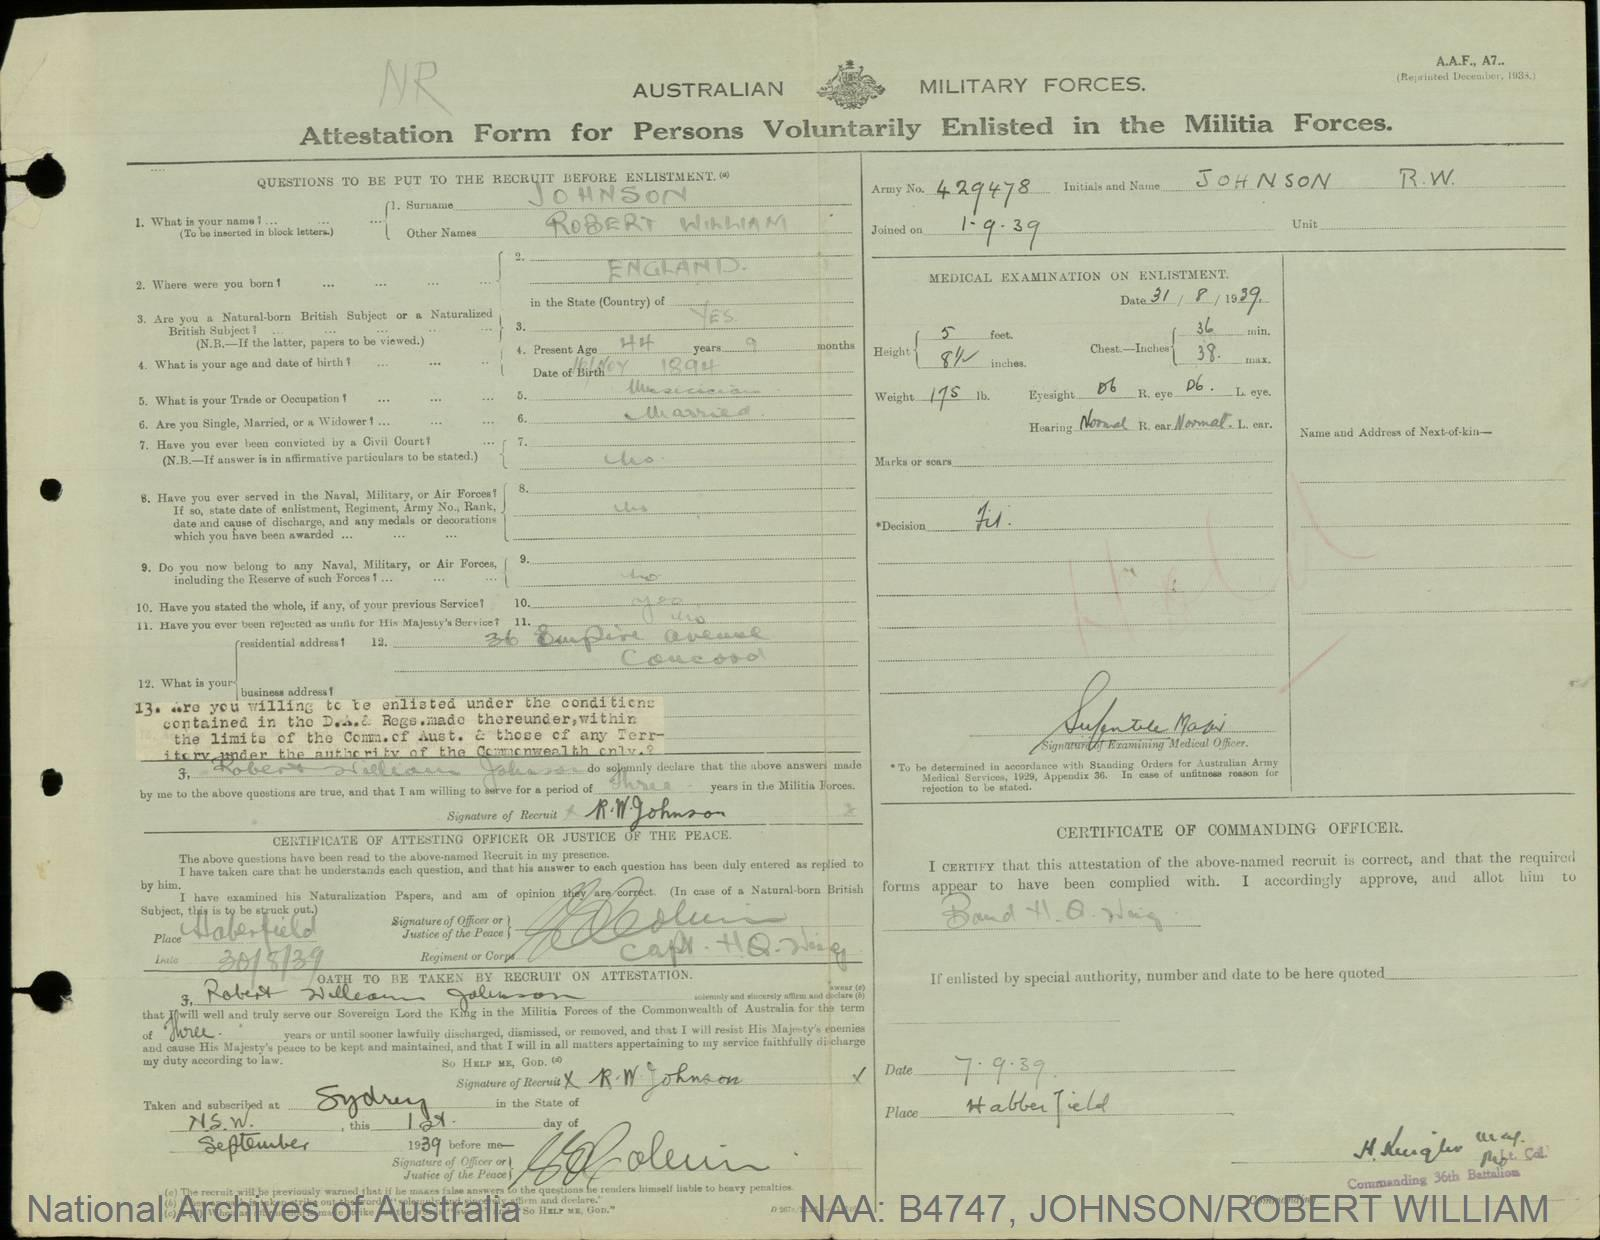 Johnson, Robert William; Army Number - 429478; Date of birth - 16 November 1894